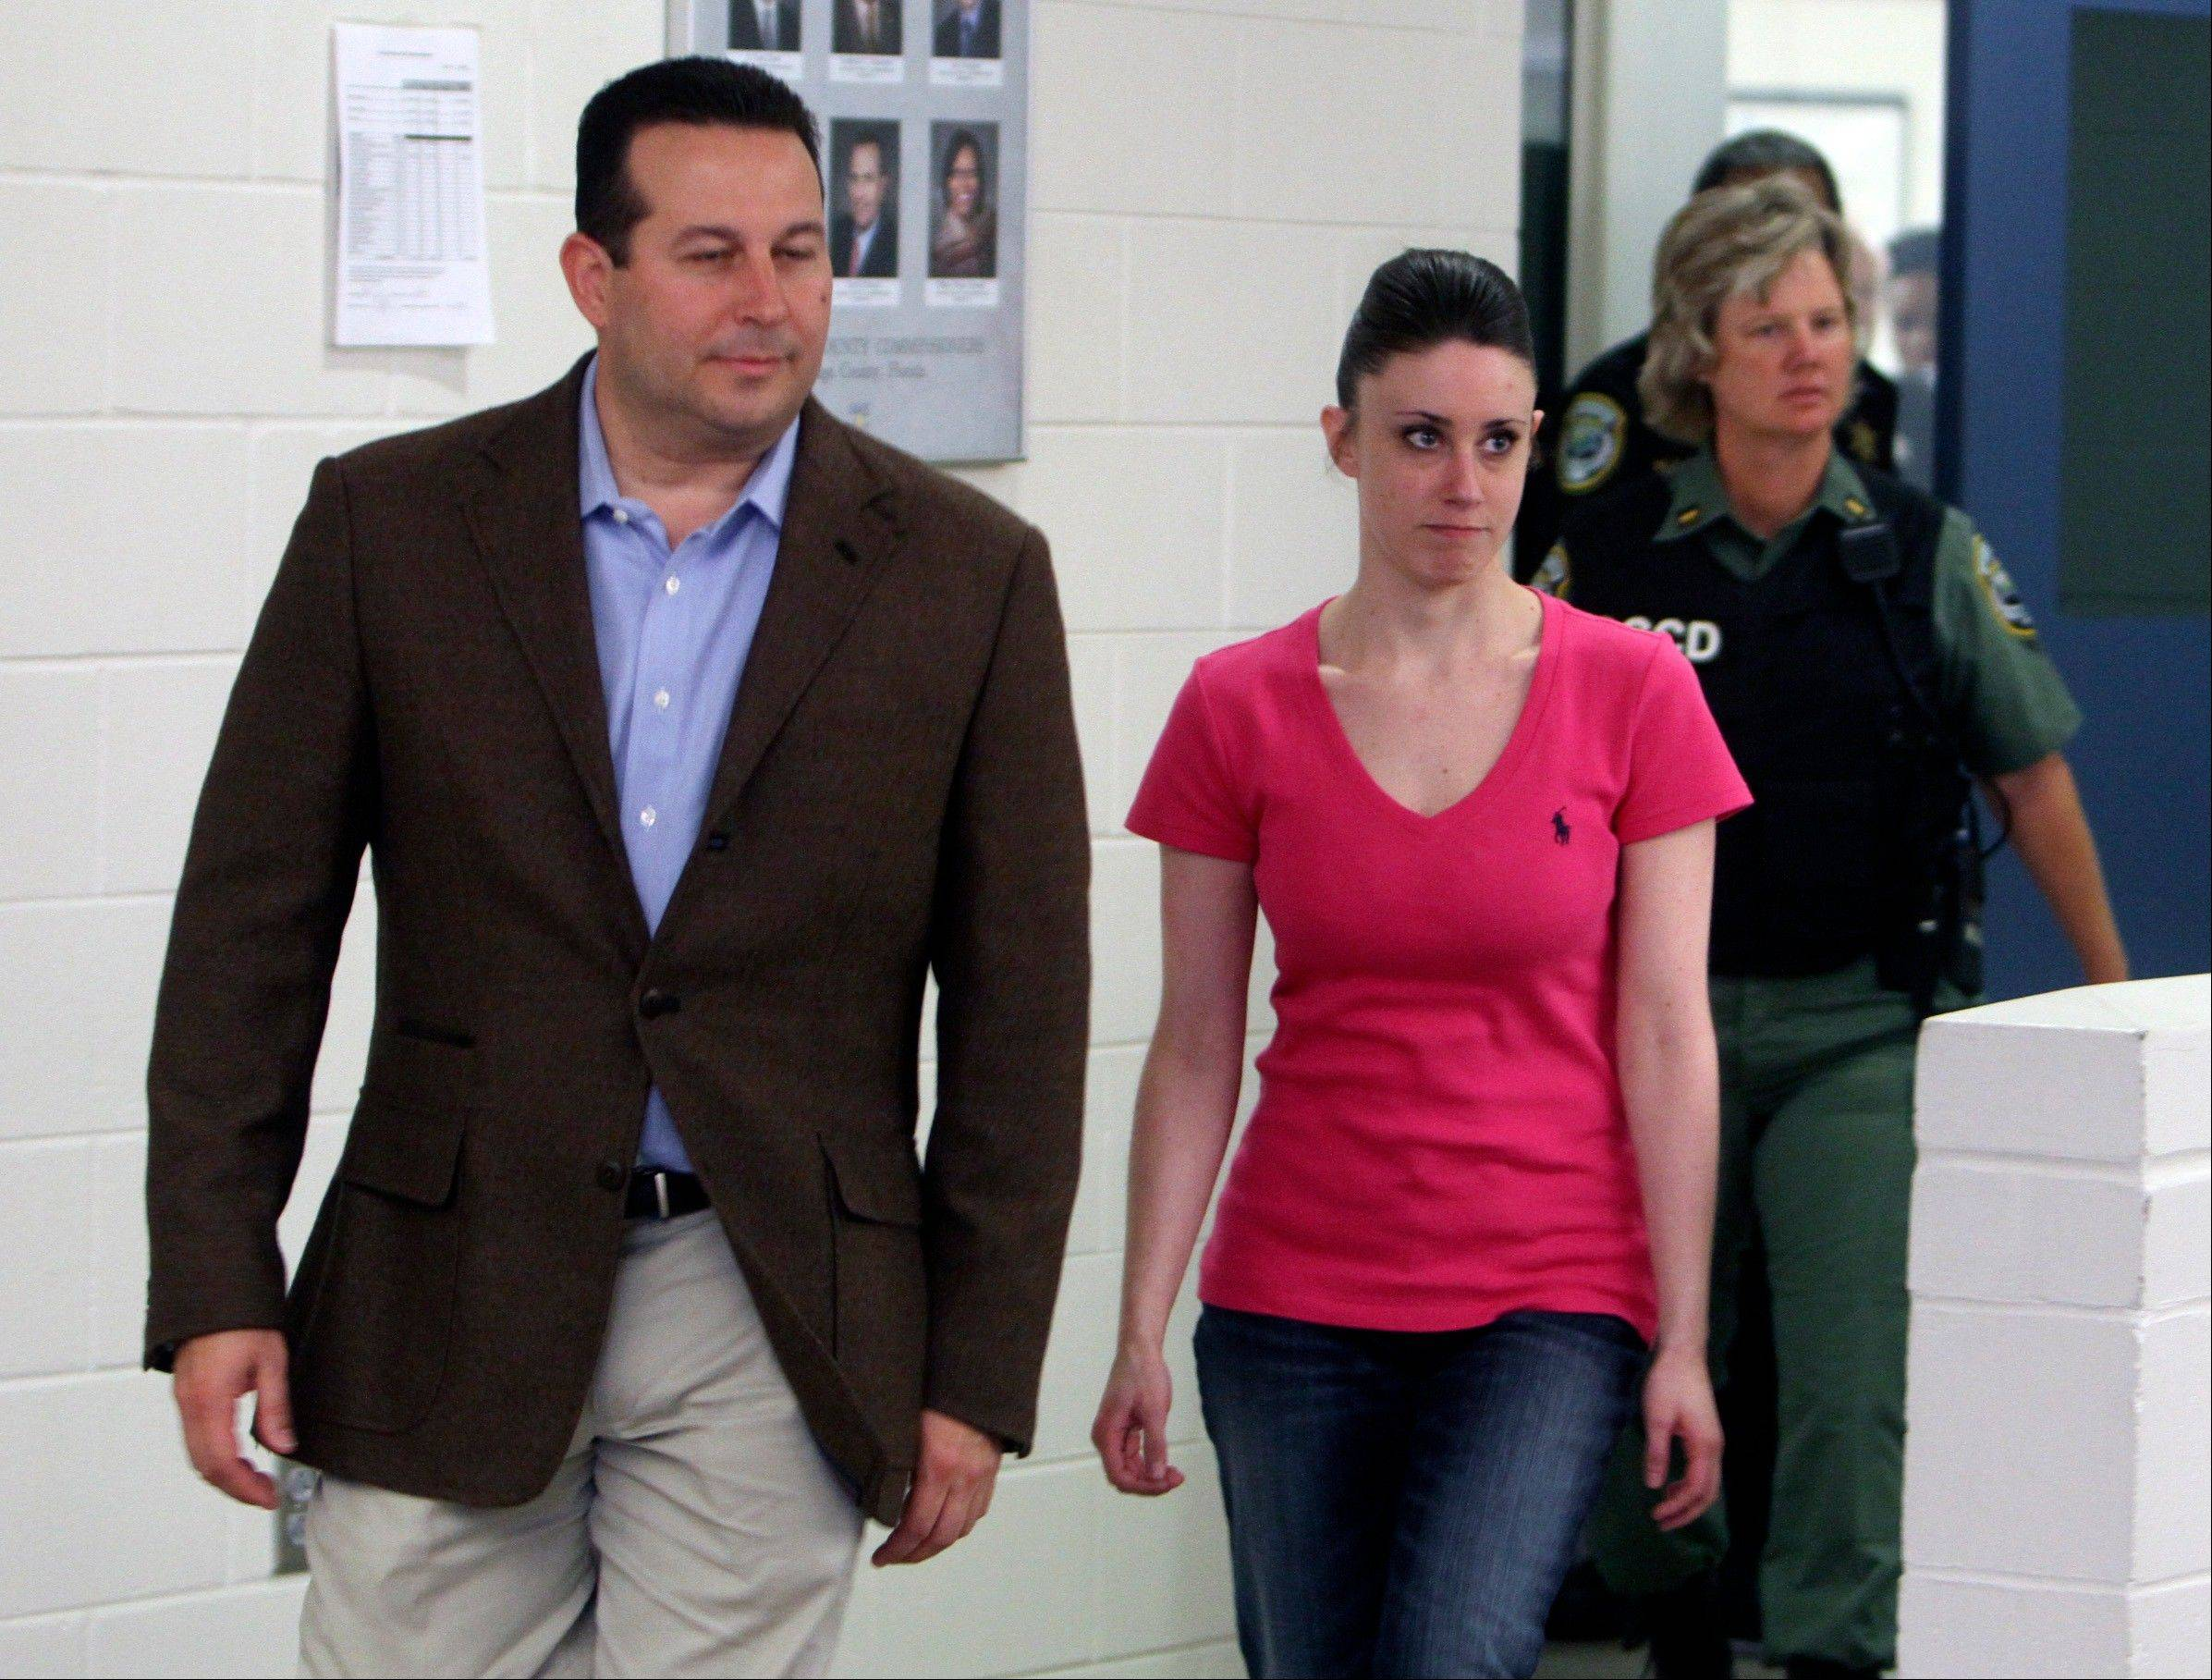 Casey Anthony, front right, walks out of the Orange County Jail with her attorney Jose Baez, left, during her release in Orlando, Fla., after being acquitted of murder in the death of her daughter Caylee on July 17, 2011.